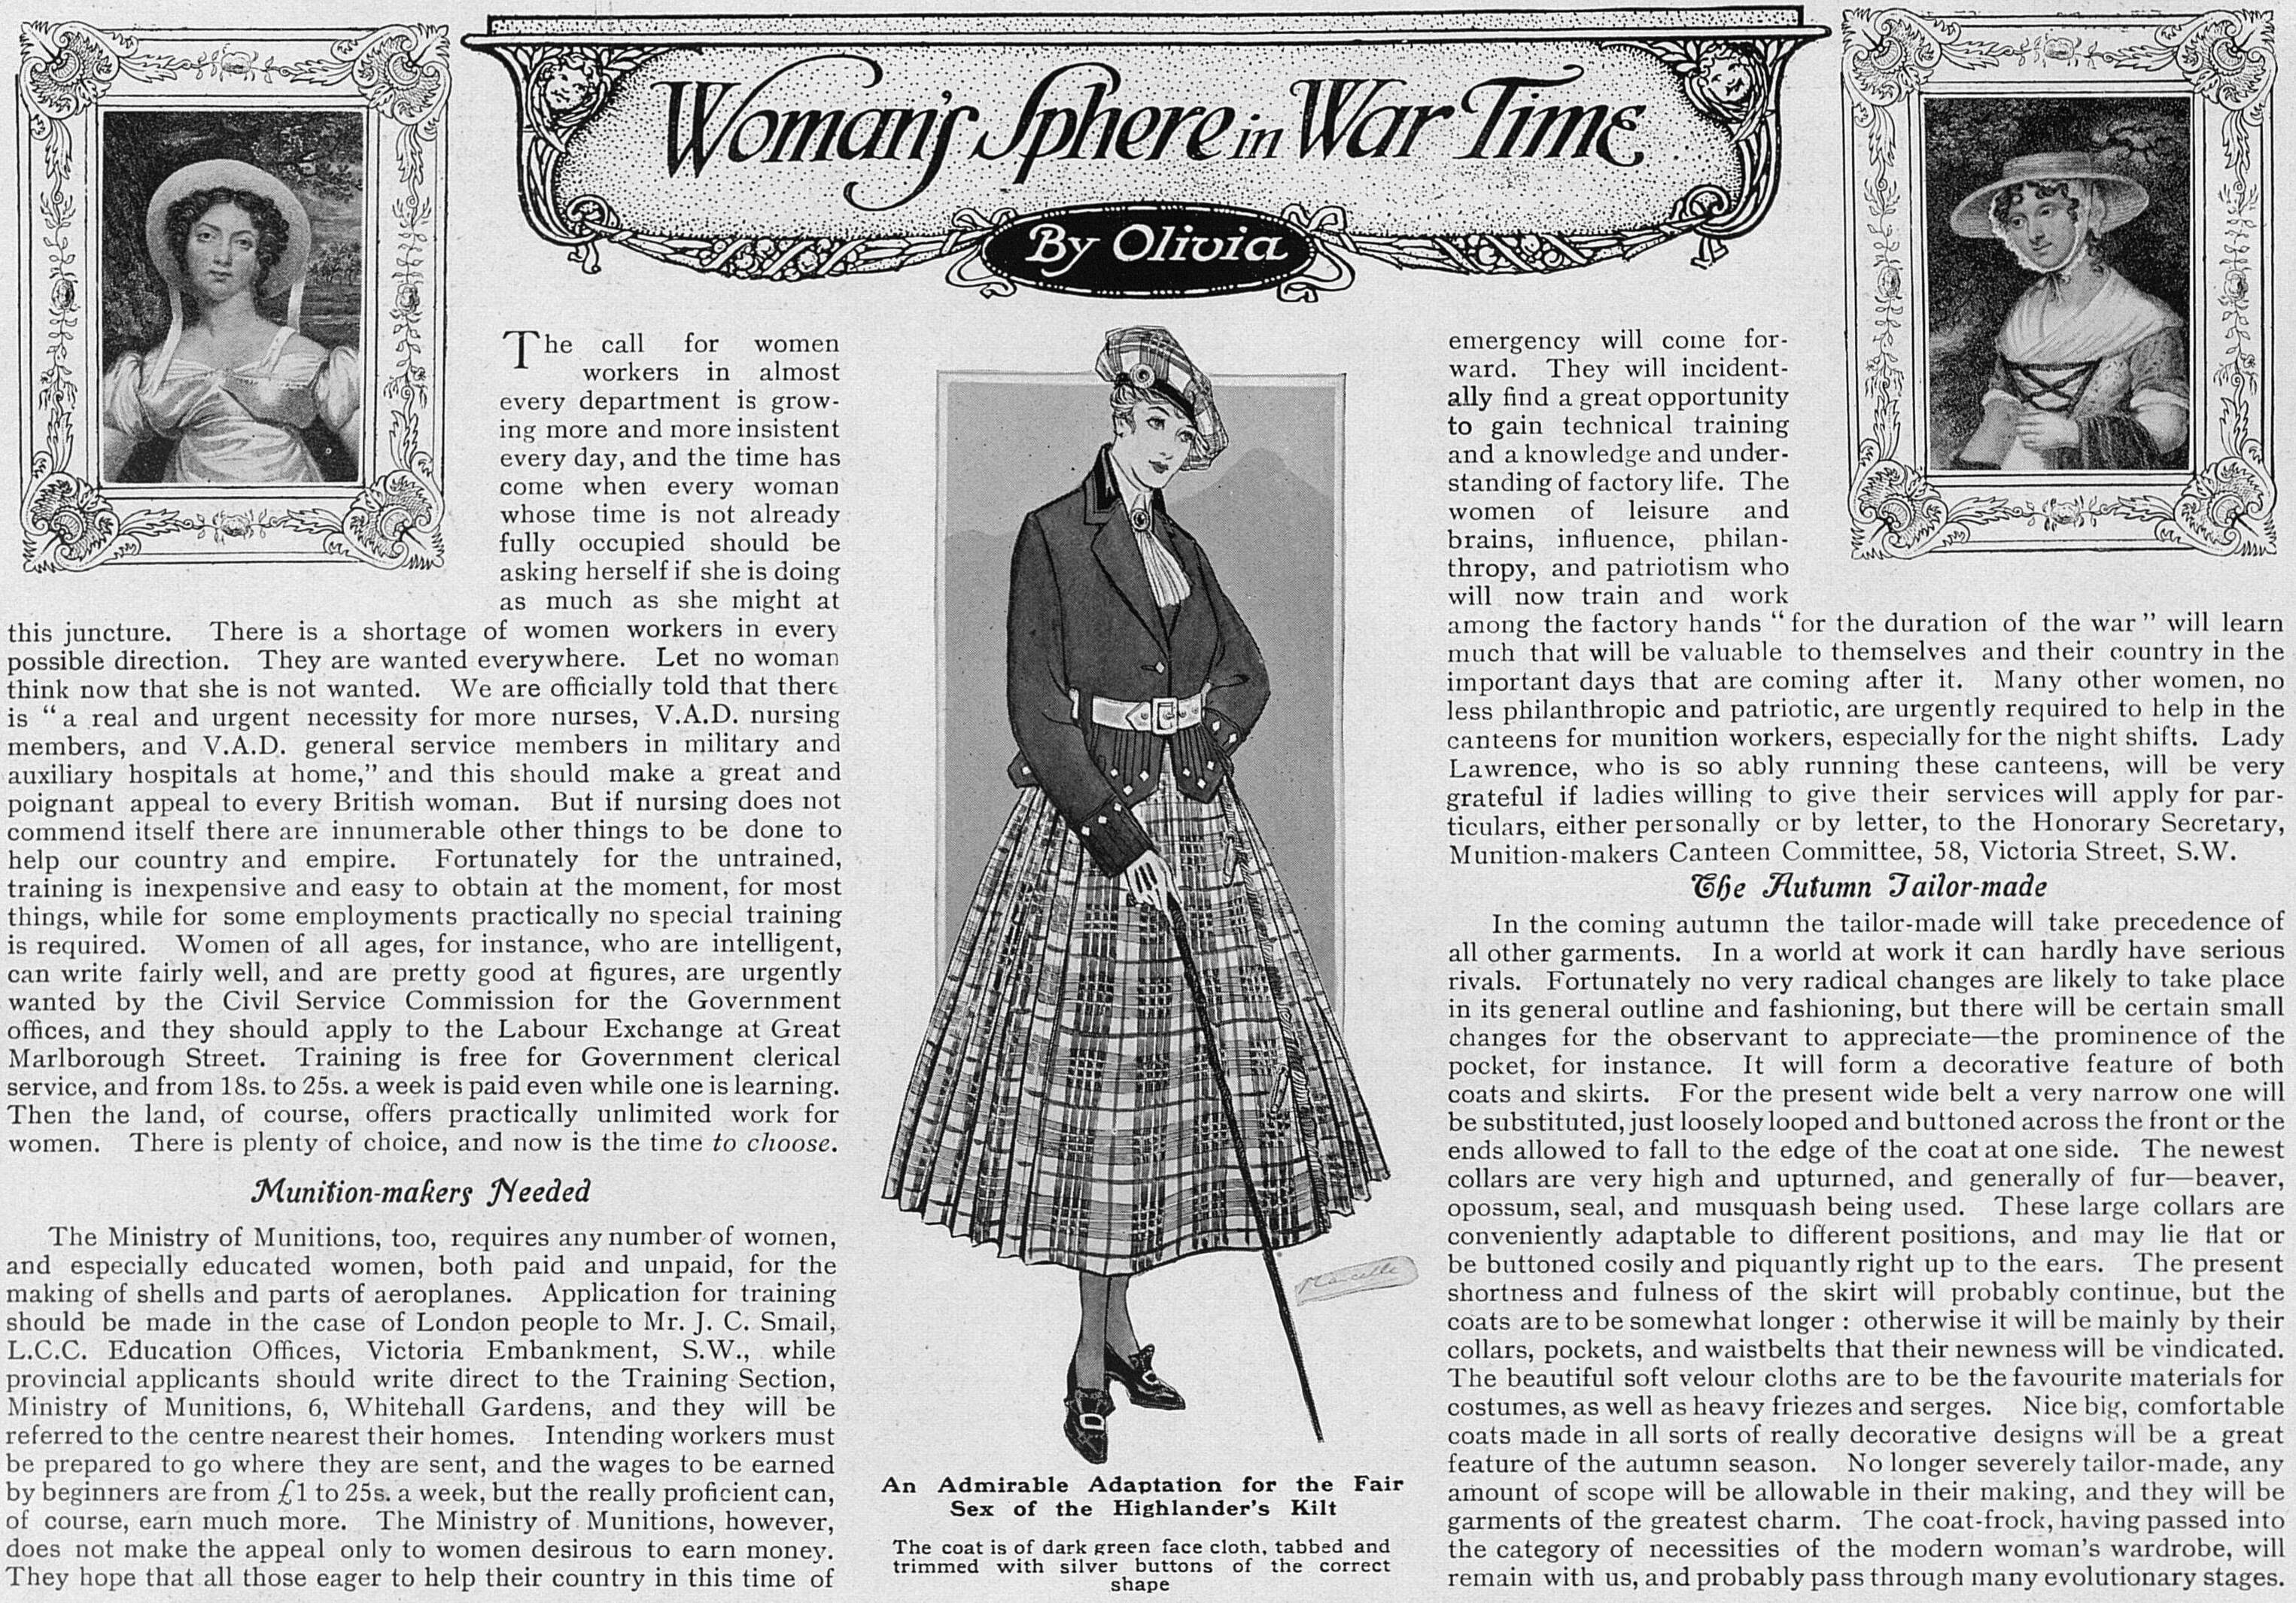 WomansSphereInWarTime_2Sep1916